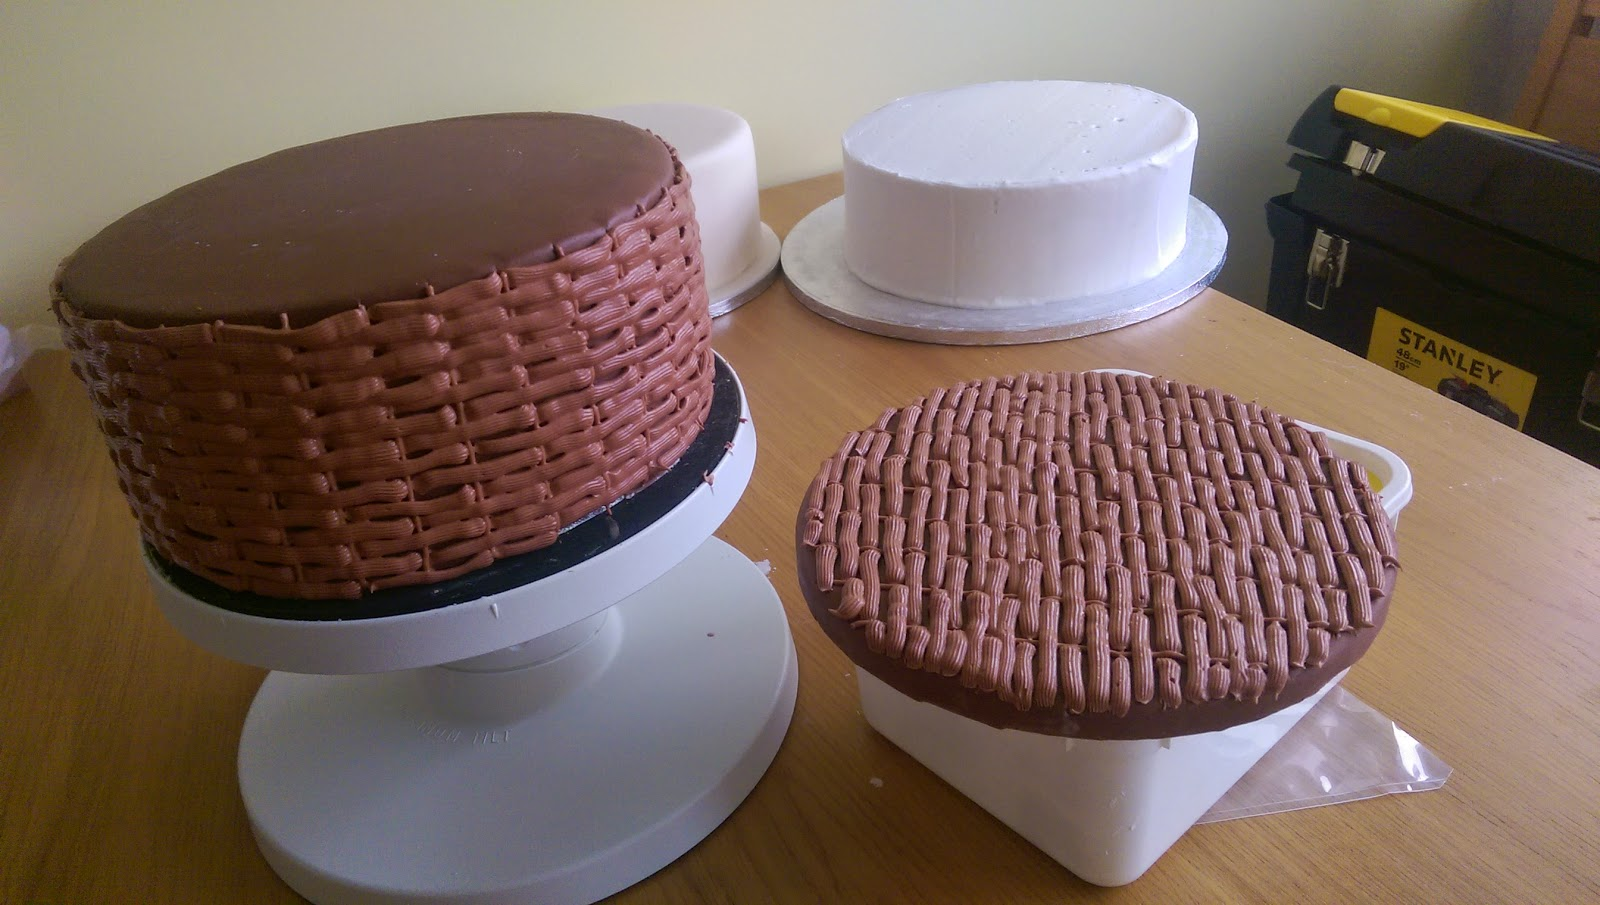 How To Make A Basket Weave Effect : Baking for the mini manley mum s sewing basket